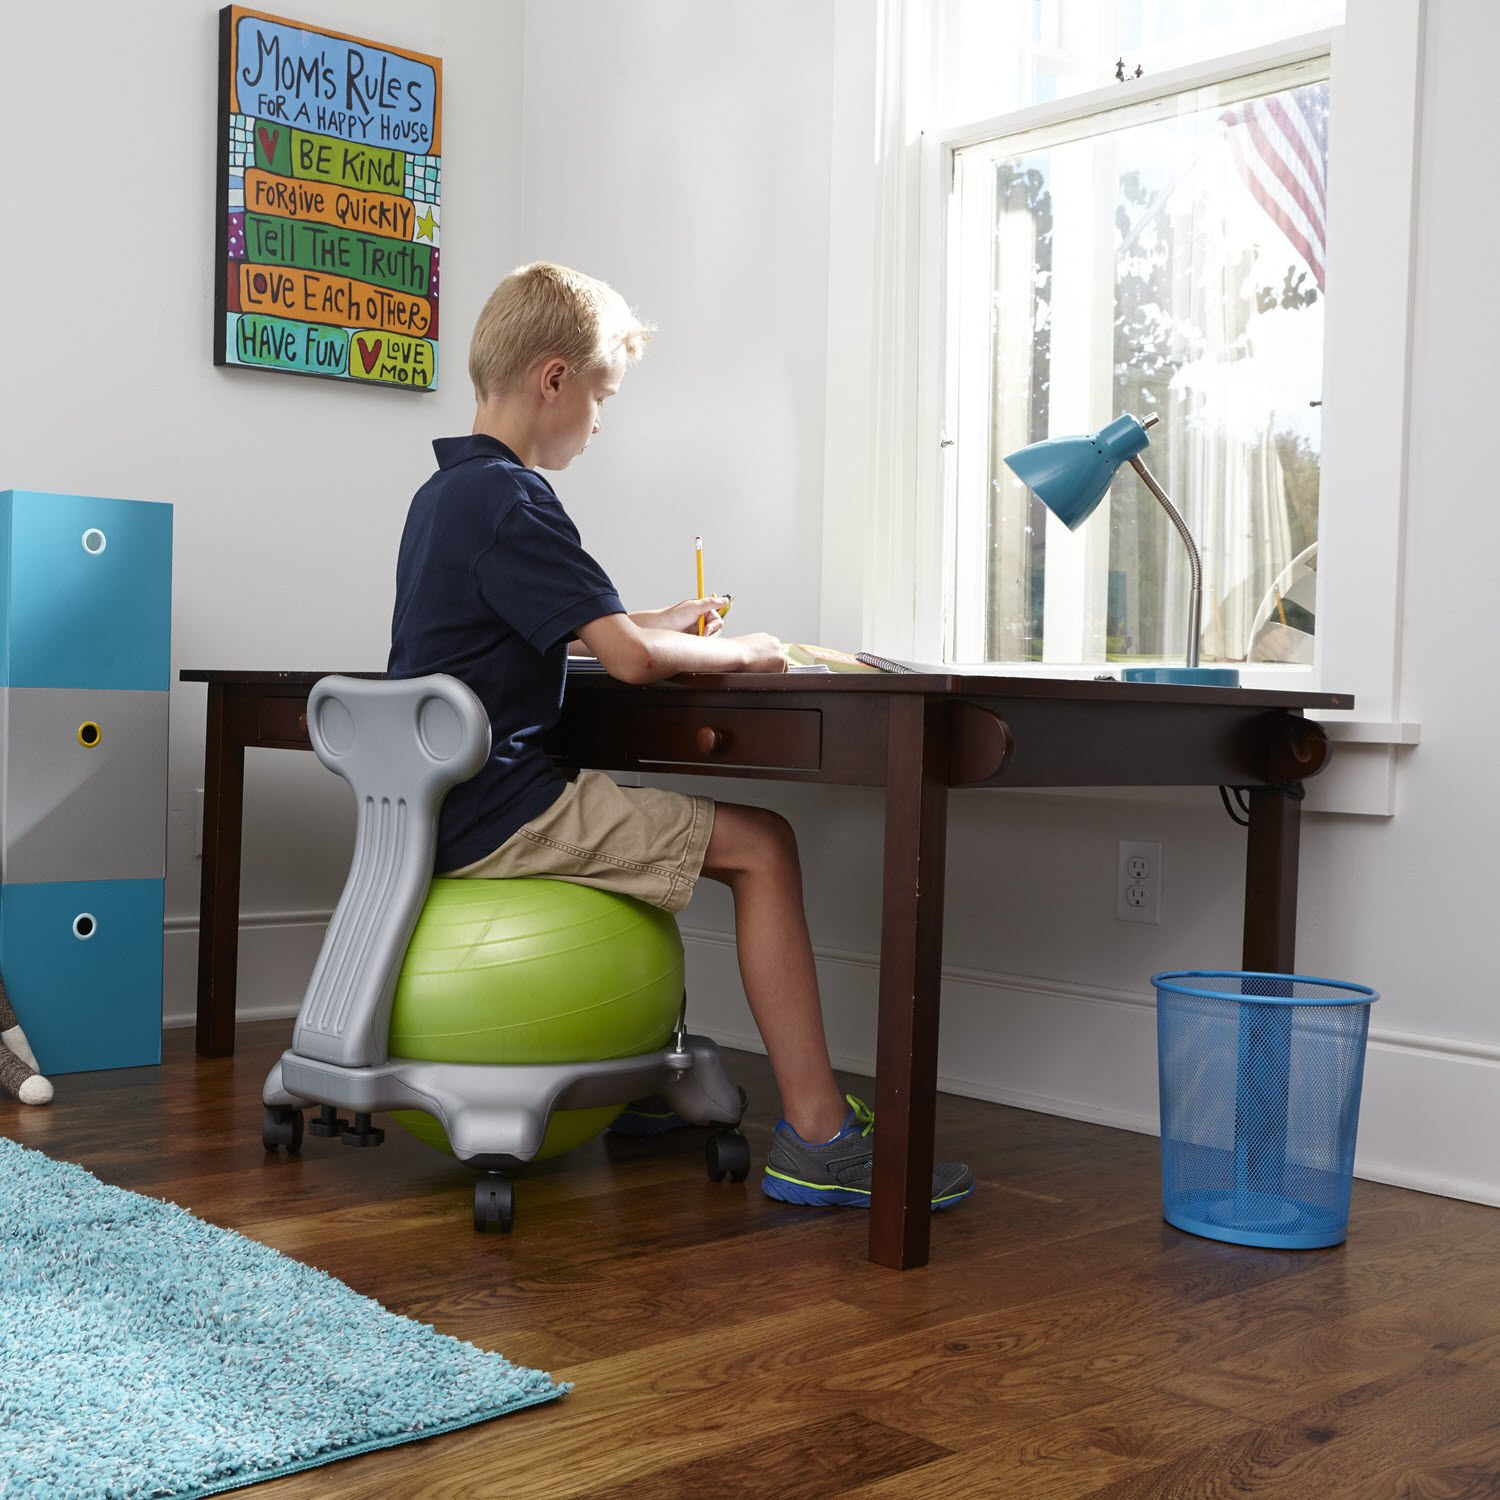 Gaiam Kids Balance Ball Chair - Classic Children's Stability Ball Chair, Alternative School Classroom Flexible Desk Seating for Active Students with Satisfaction Guarantee, Green by Gaiam (Image #5)